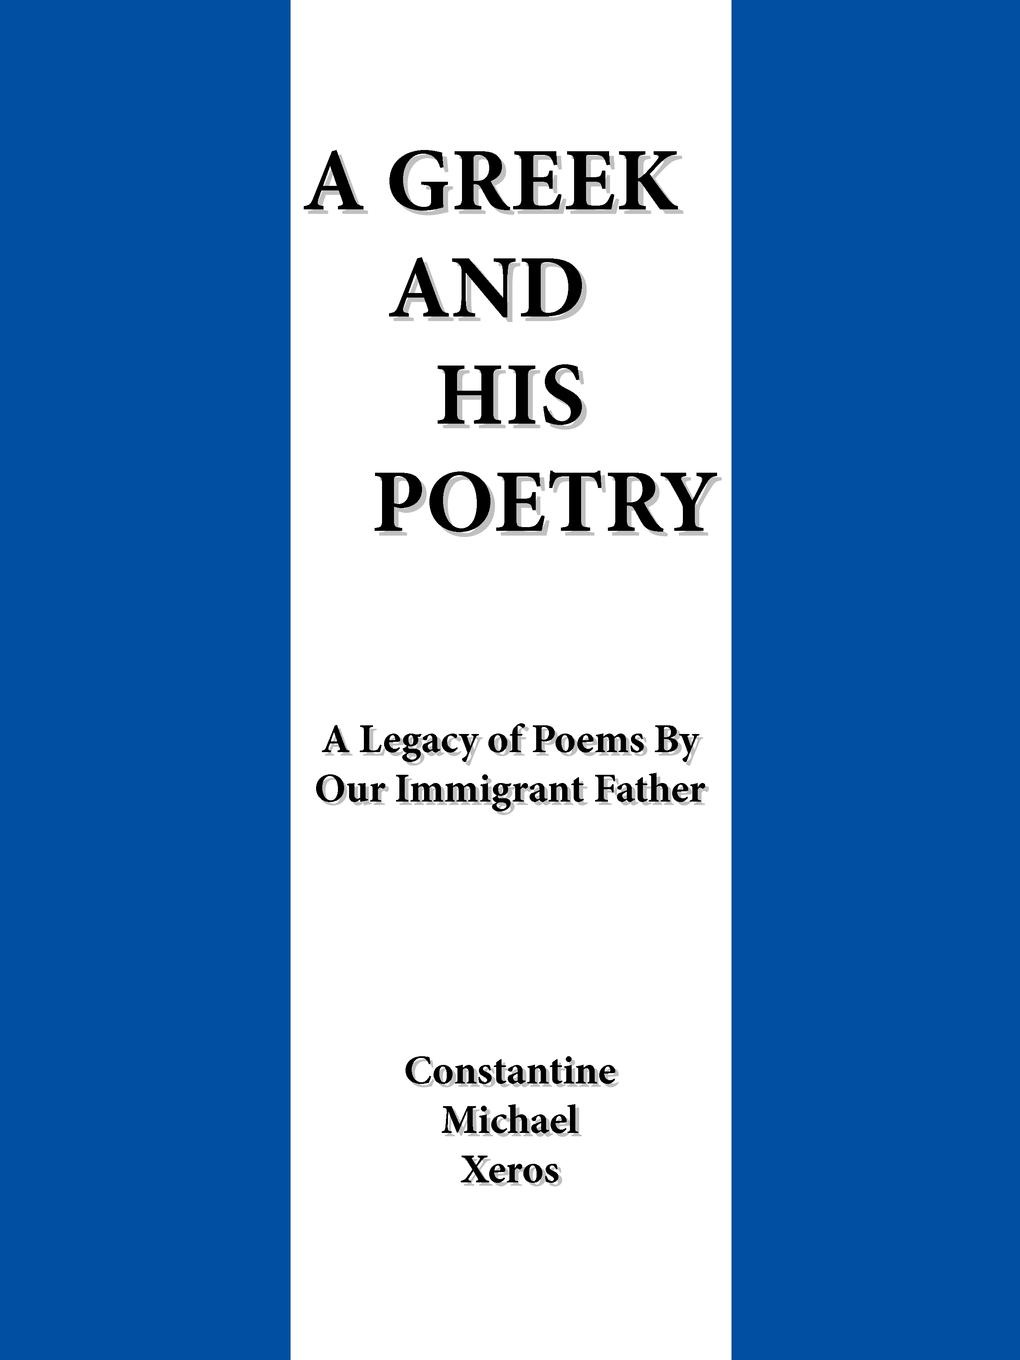 Constantine Michael Xeros A Greek and His Poetry. A Legacy of Poems by Our Immigrant Father rubens and his legacy